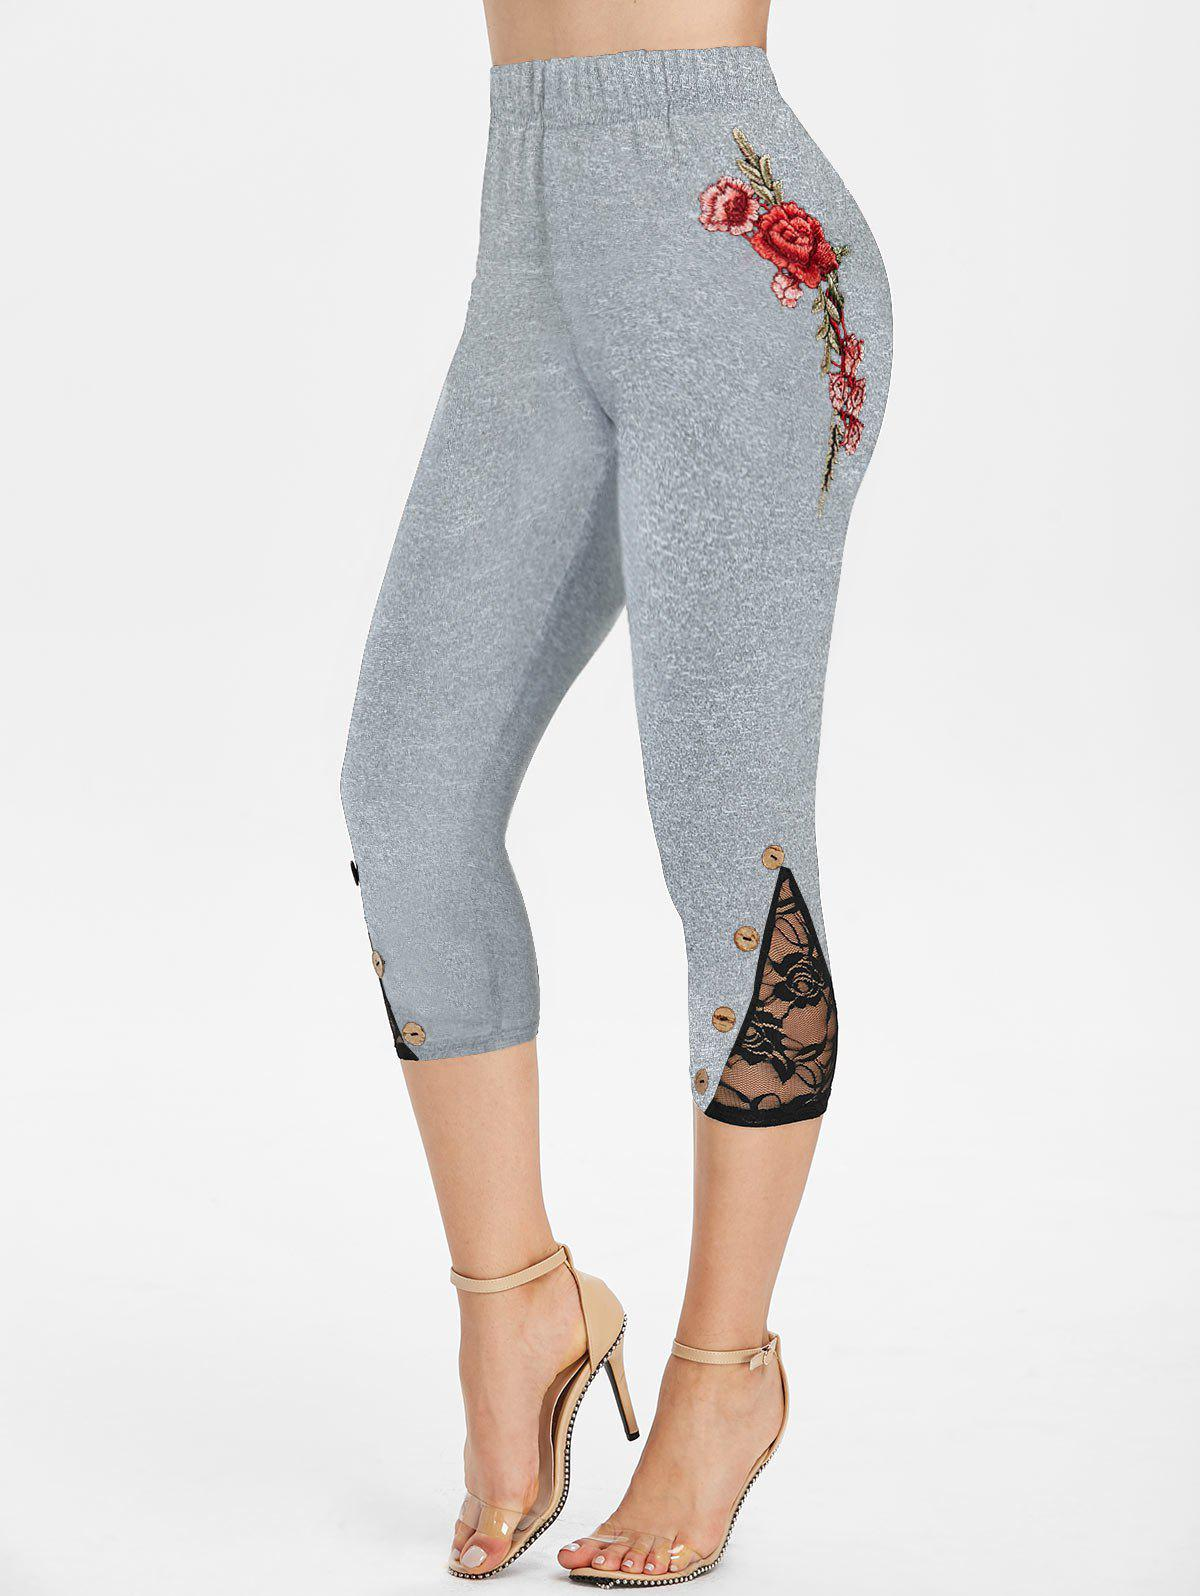 Flower Embroidered Button Embellished Capri Leggings - GRAY 3XL